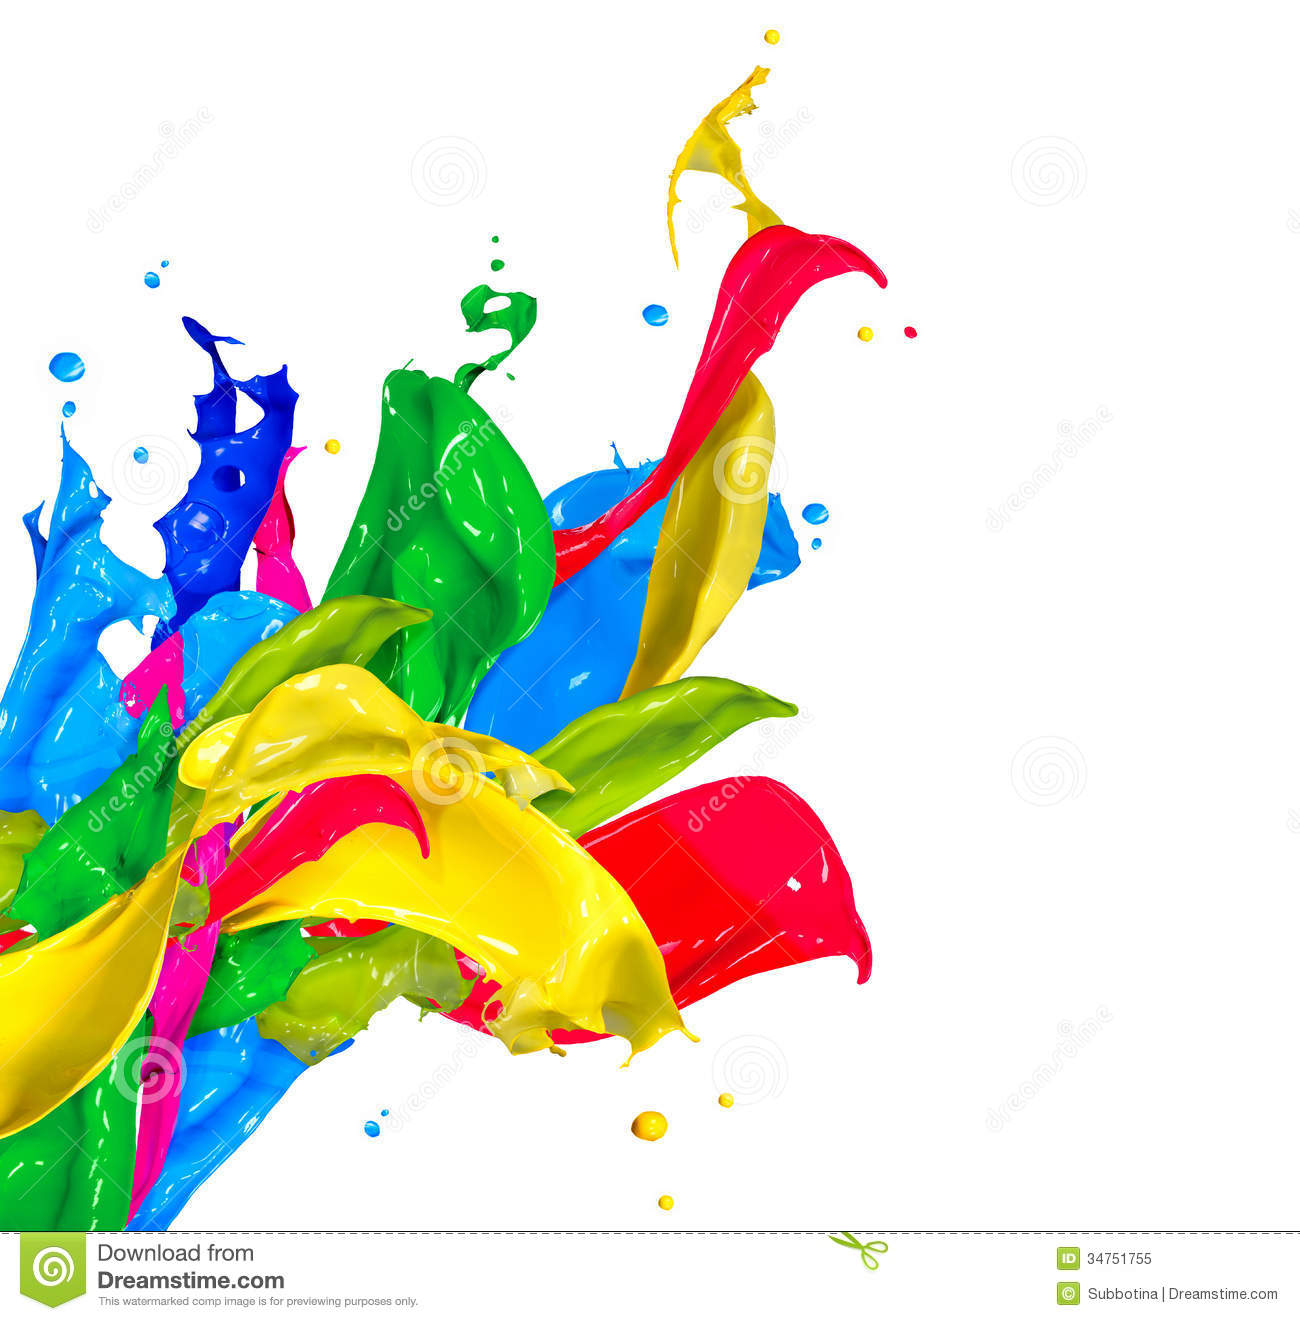 Colorful Paint Splashes Royalty Free Stock Photo - Image: 34751755